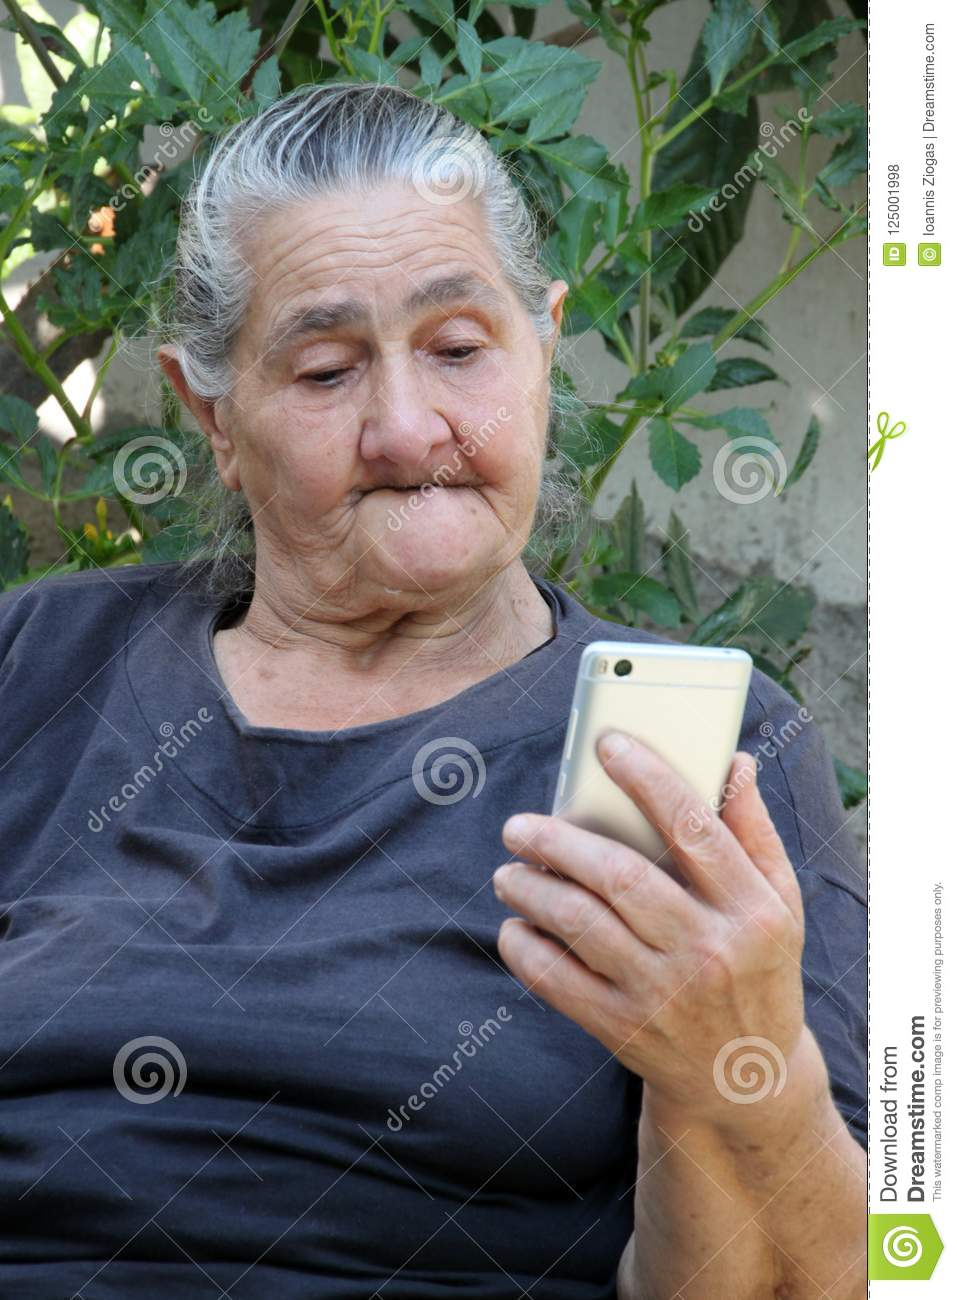 Old woman looking on a smartphone